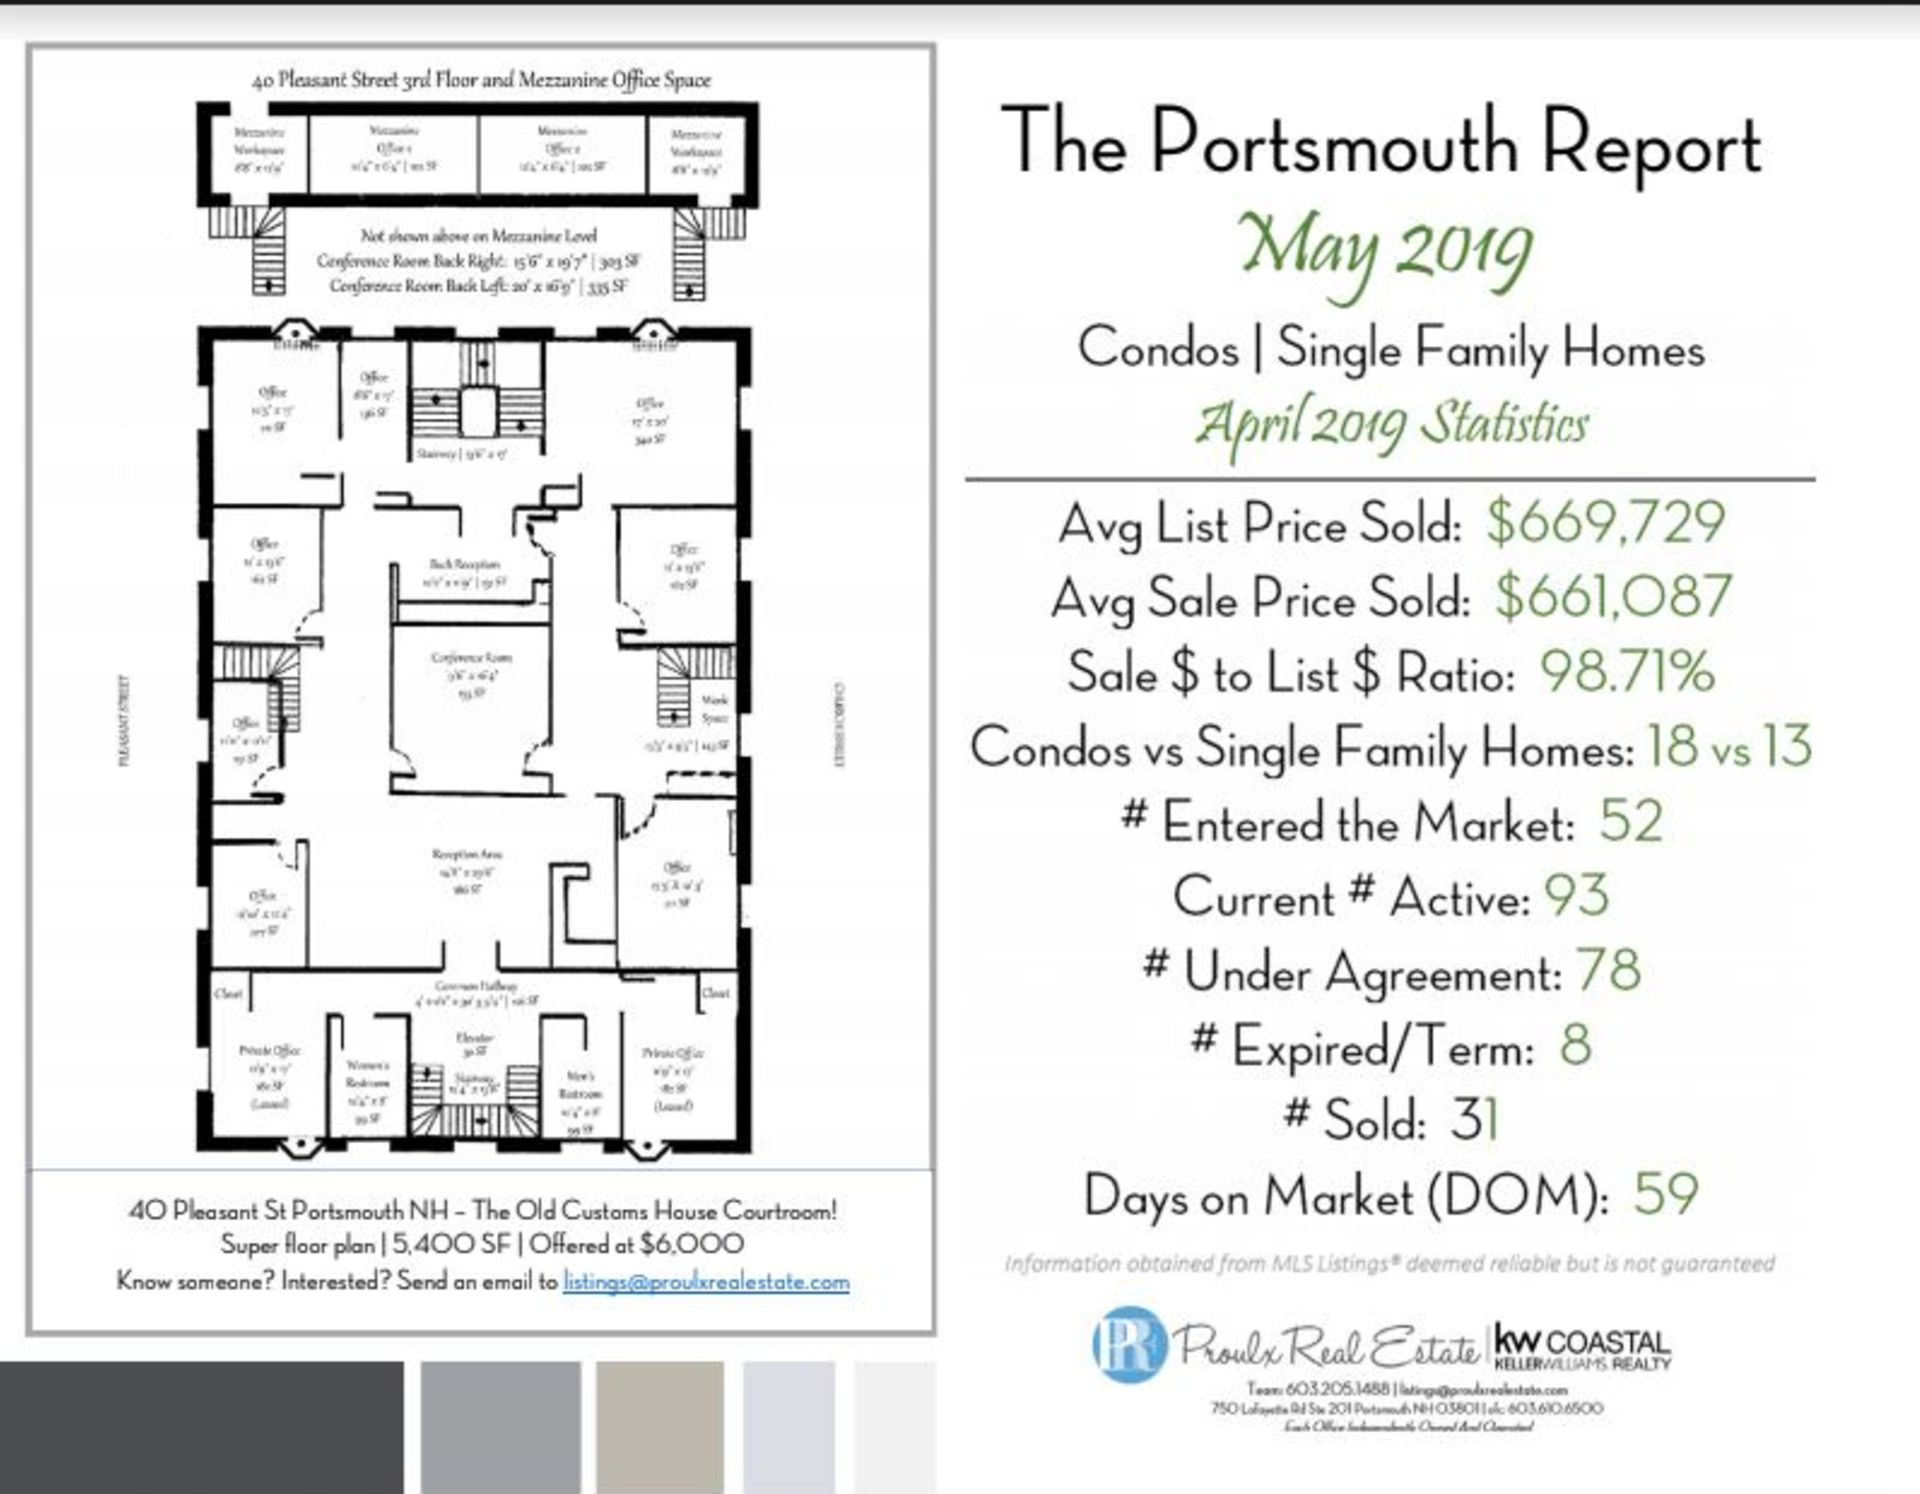 The Portsmouth Report May